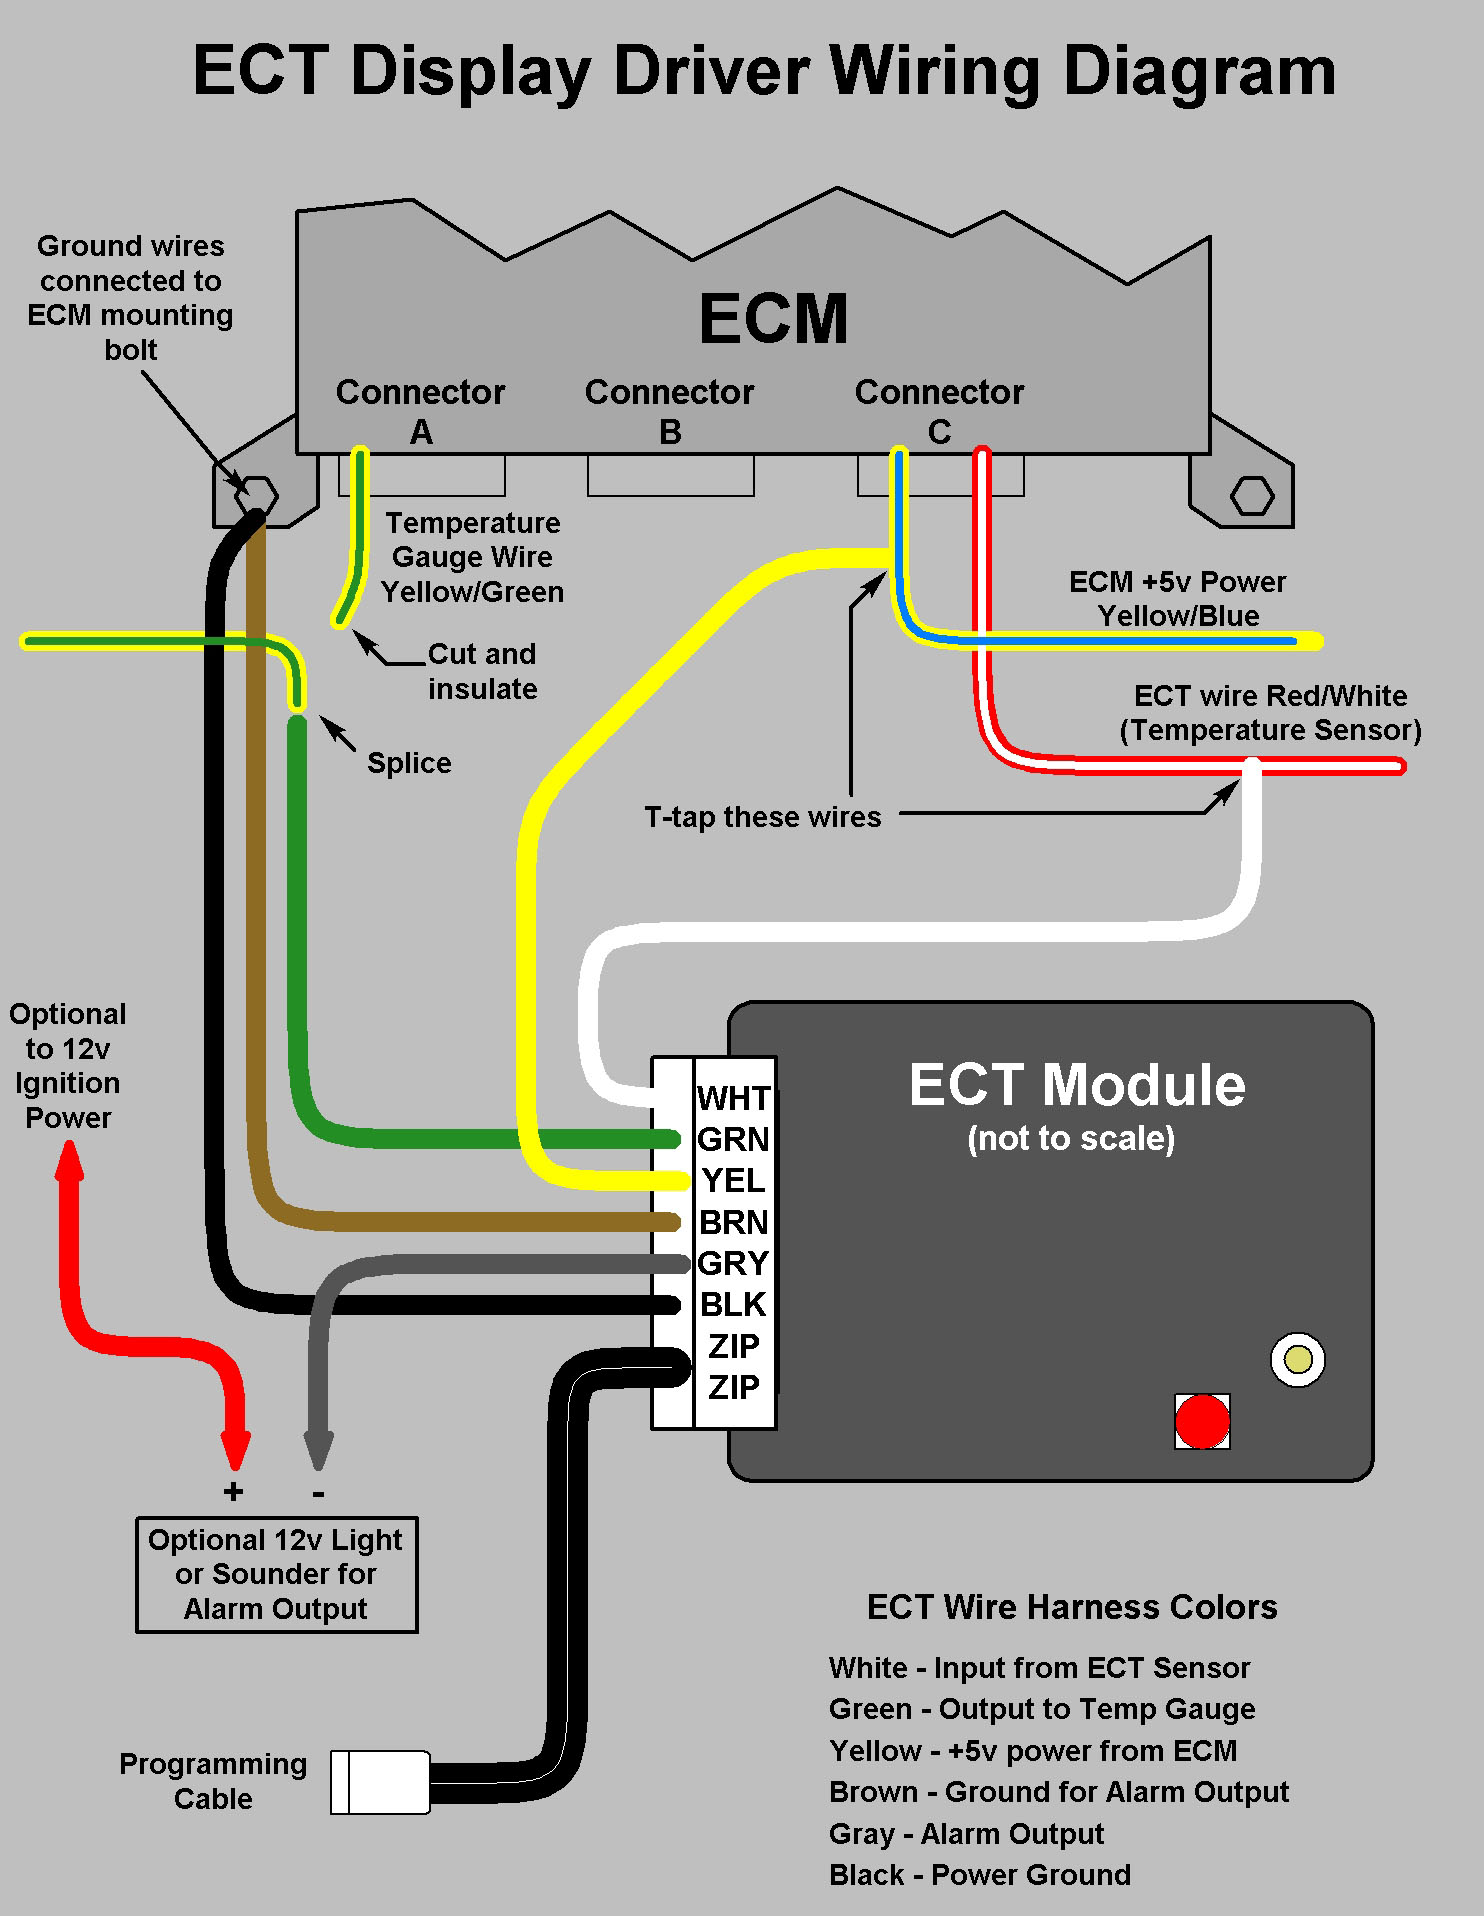 ECT wiring diagram ems wiring diagram management system \u2022 wiring diagrams j squared co edison plug wiring diagram at aneh.co